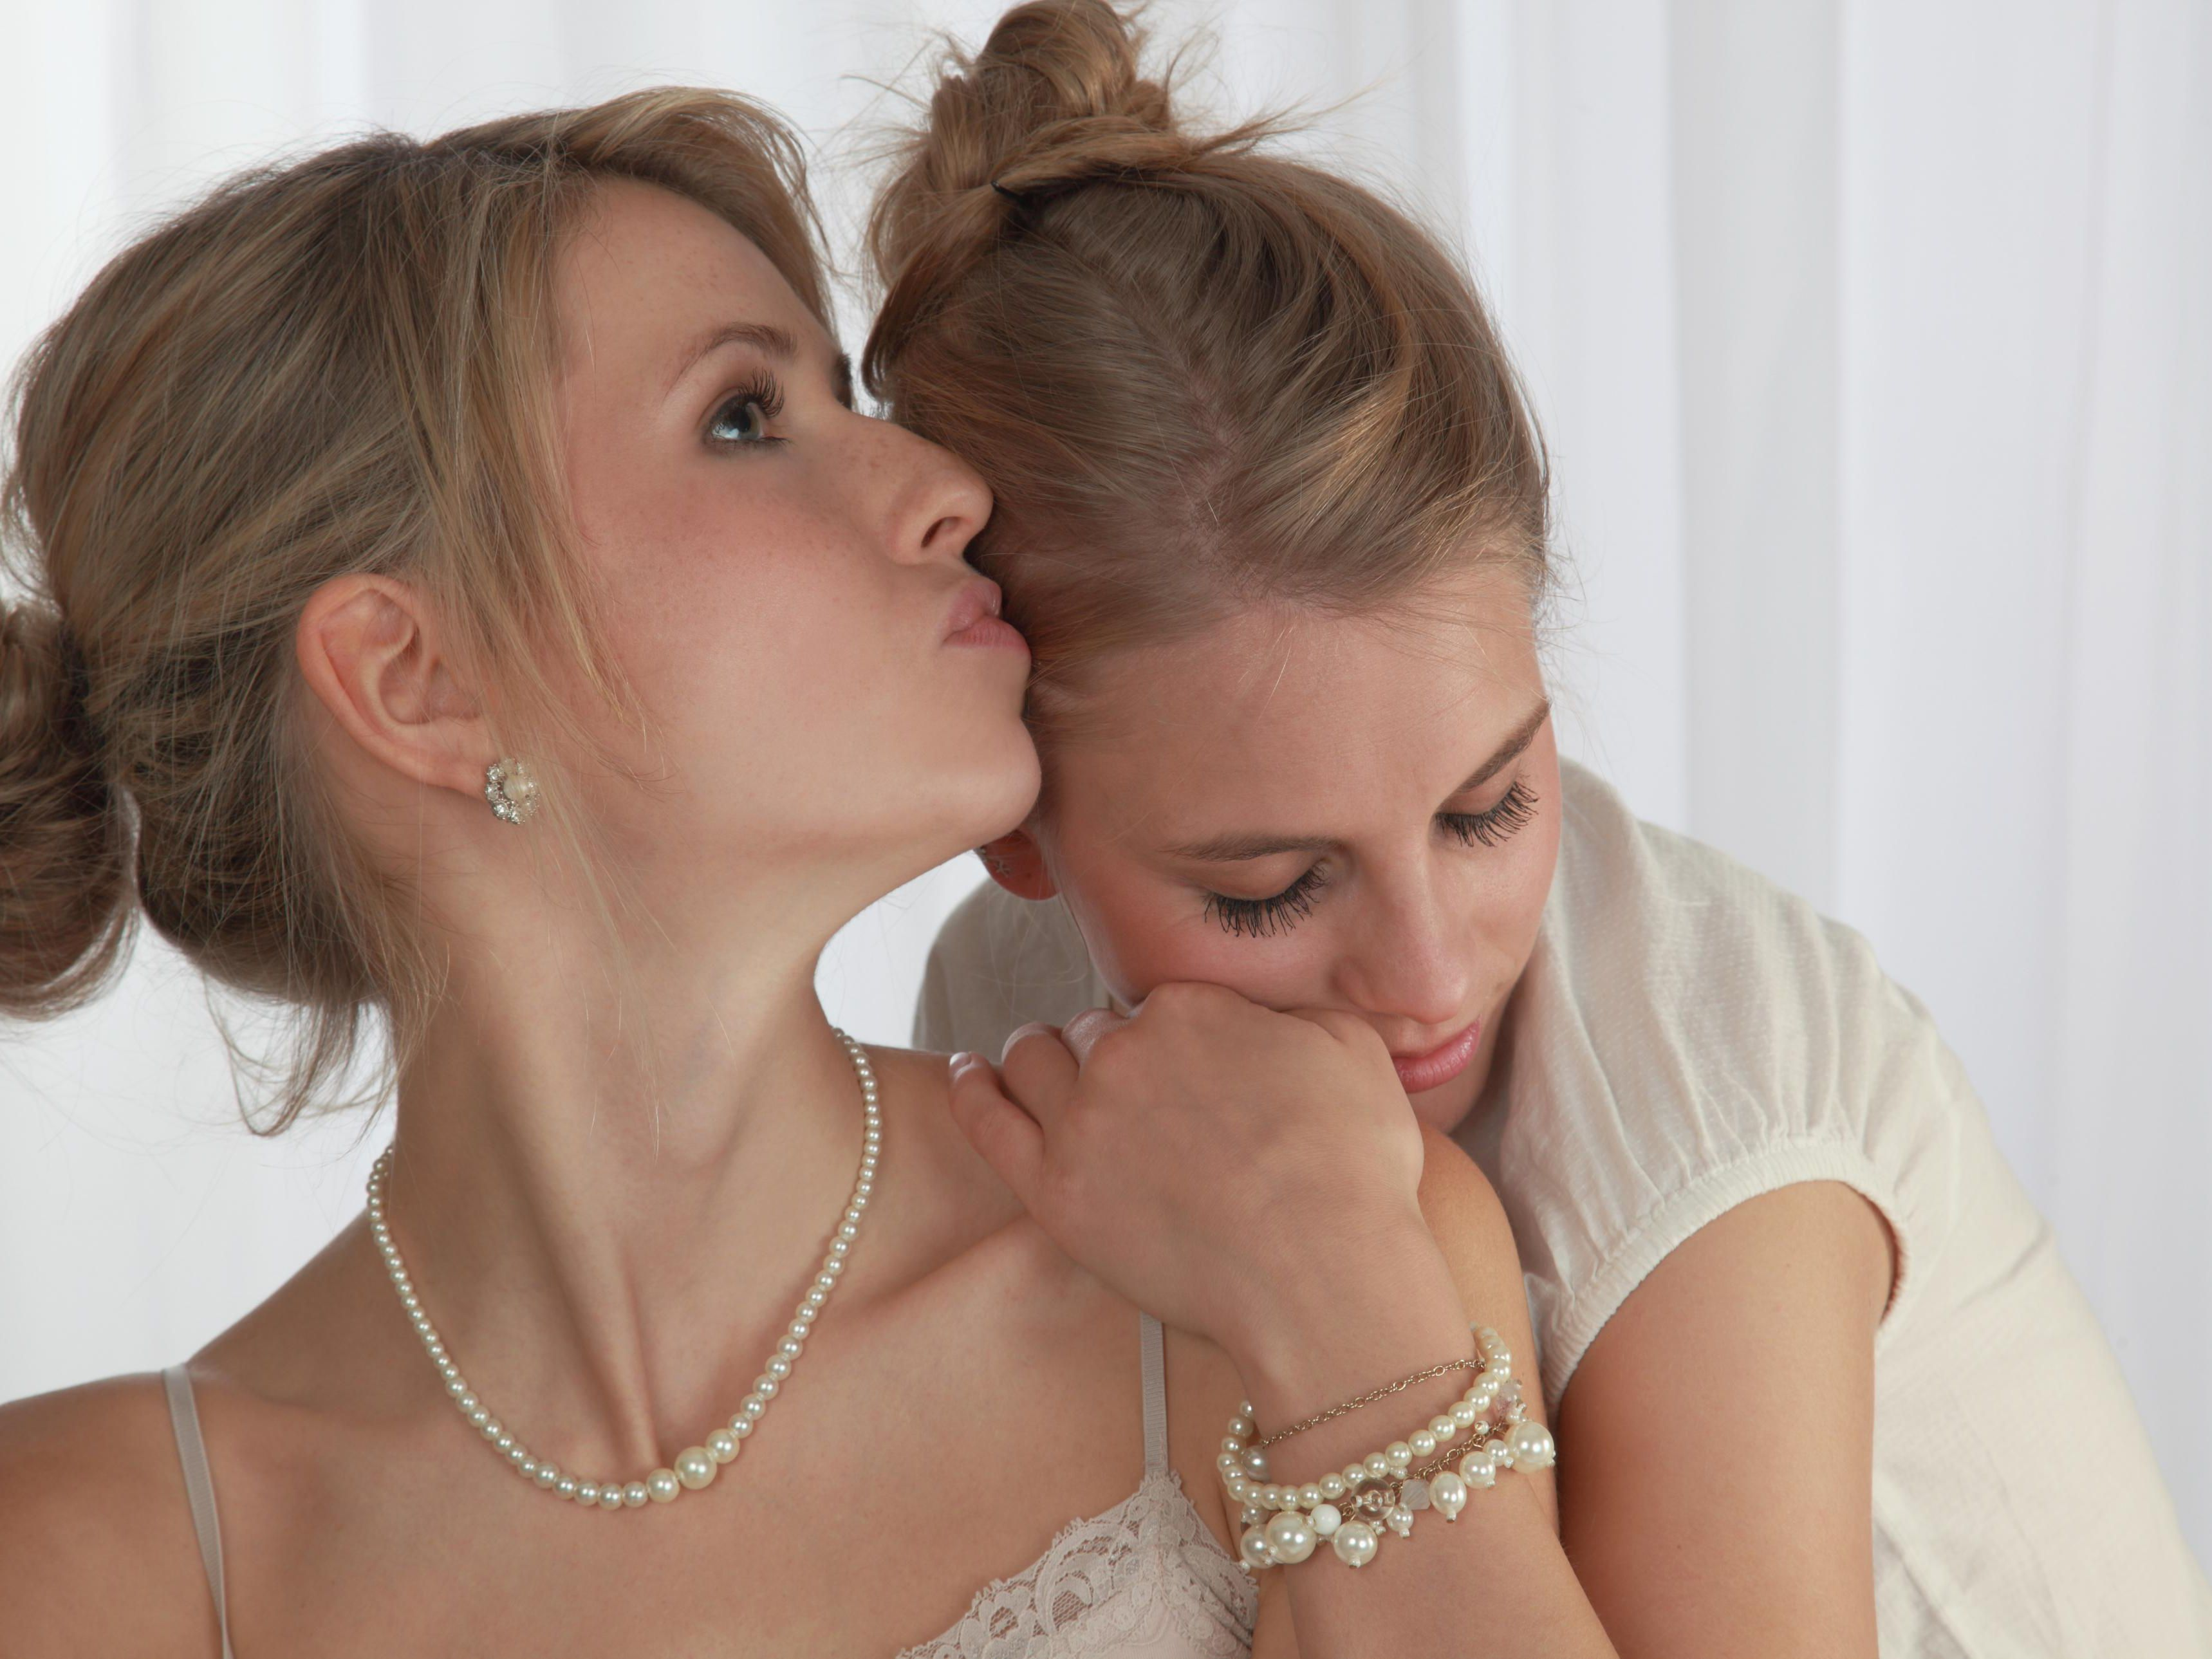 Lesbian Real First Time